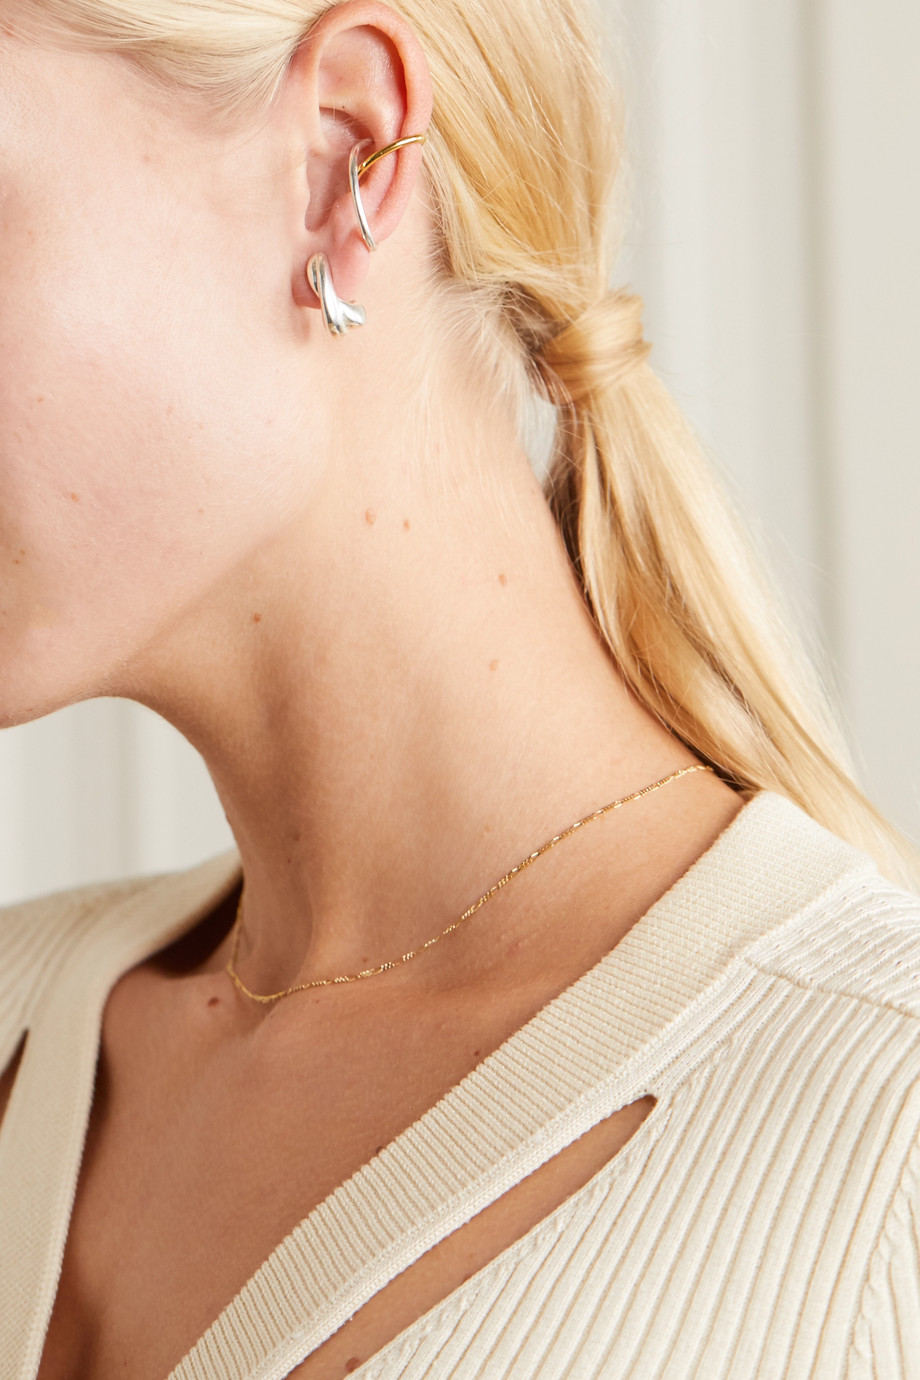 Saskia Diez + NET SUSTAIN Cross gold and silver ear cuff